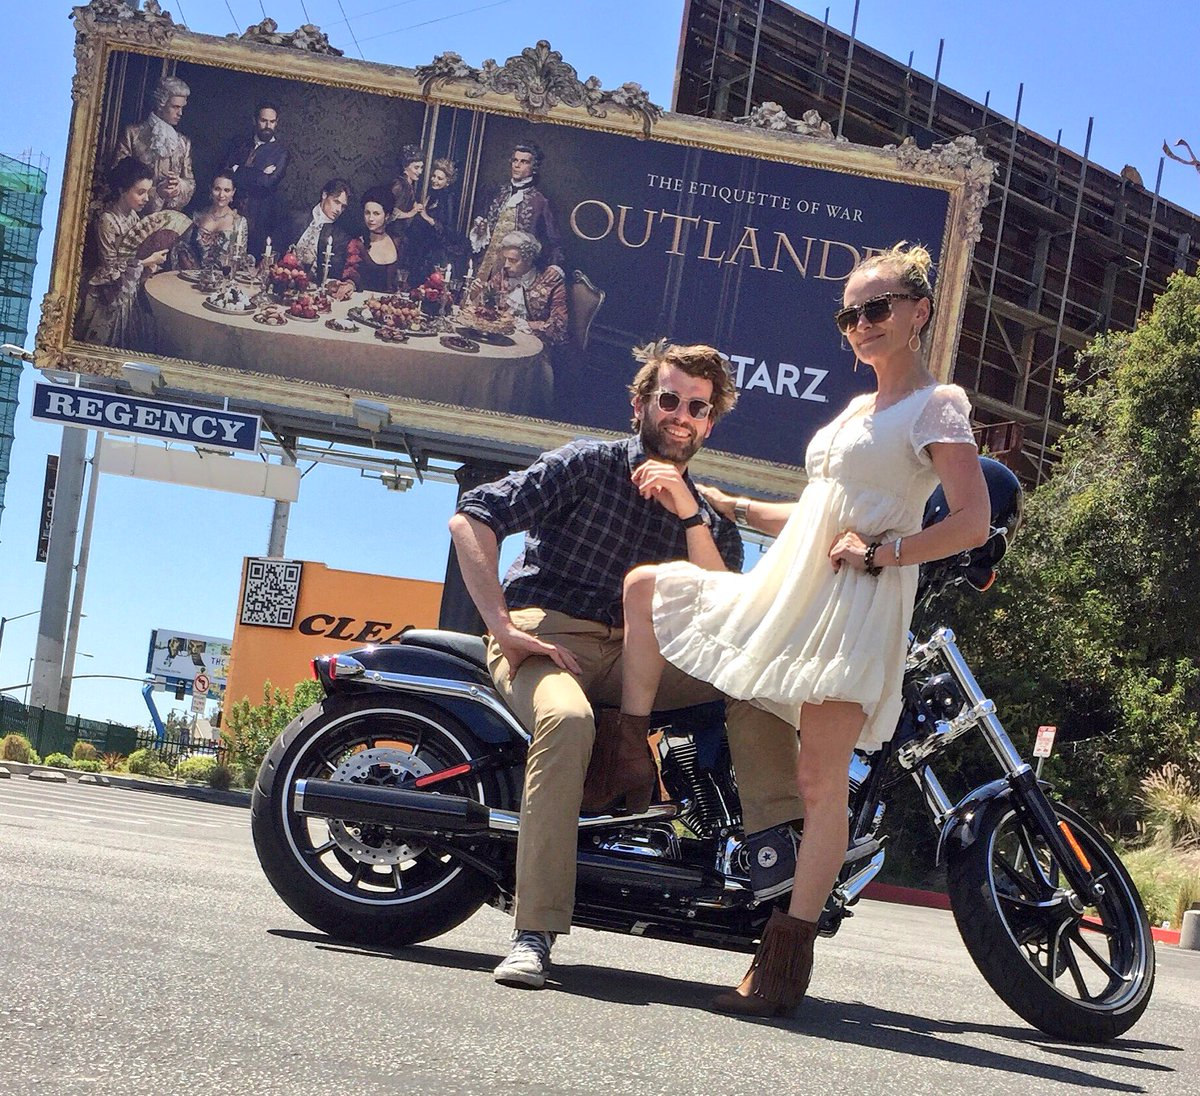 How to win a Sunday: Ride a #HarleyBreakout with @stanleyweber and make him take a pic with his billboard #outlander https://t.co/v6s6t6tbLx